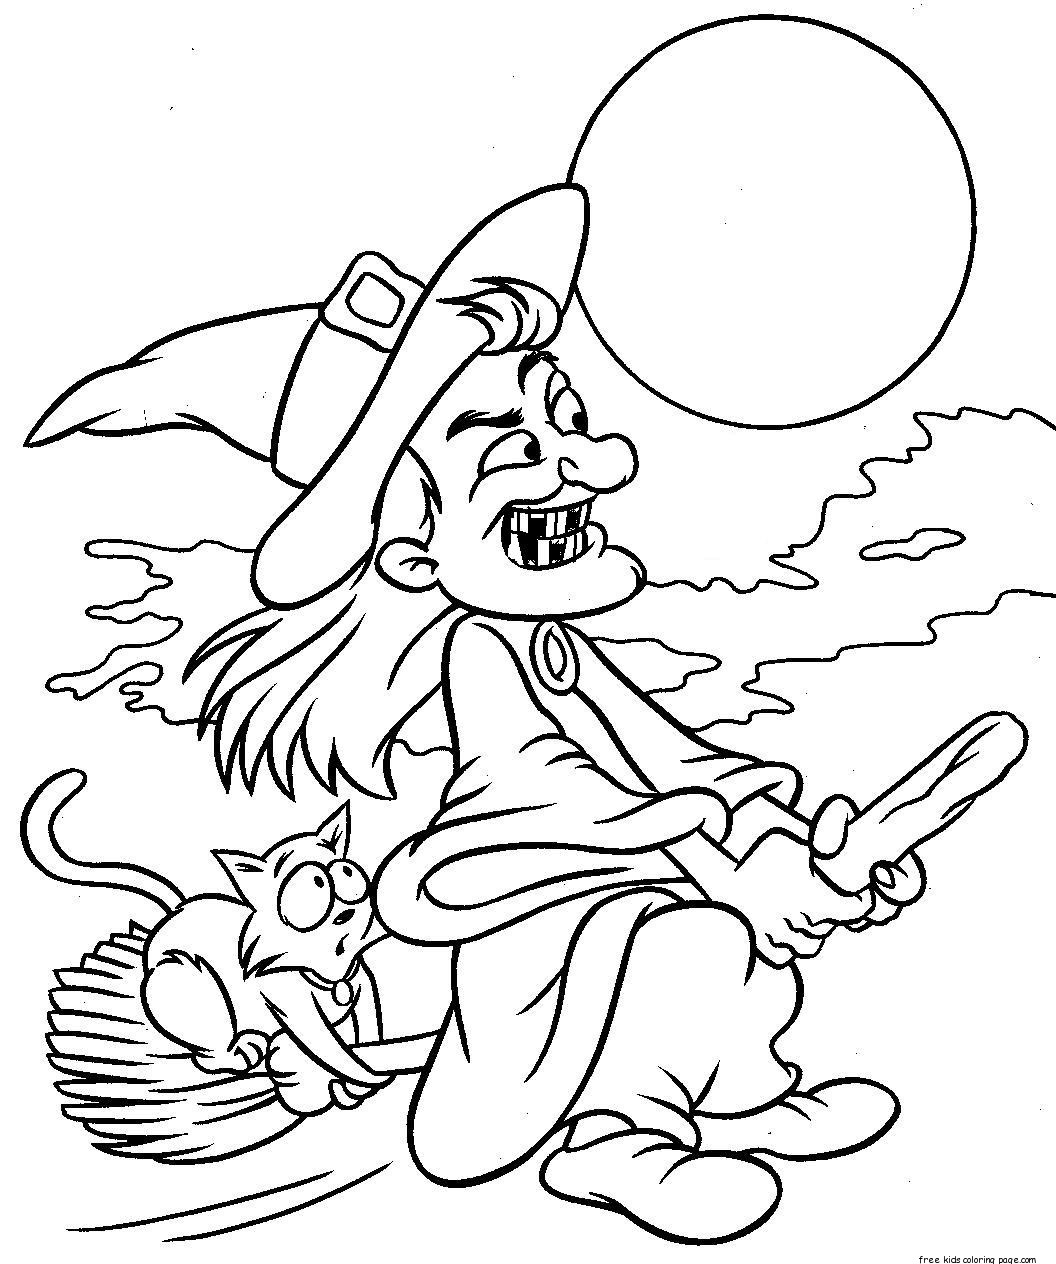 coloring printable witch craftsactvities and worksheets for preschooltoddler and witch coloring printable